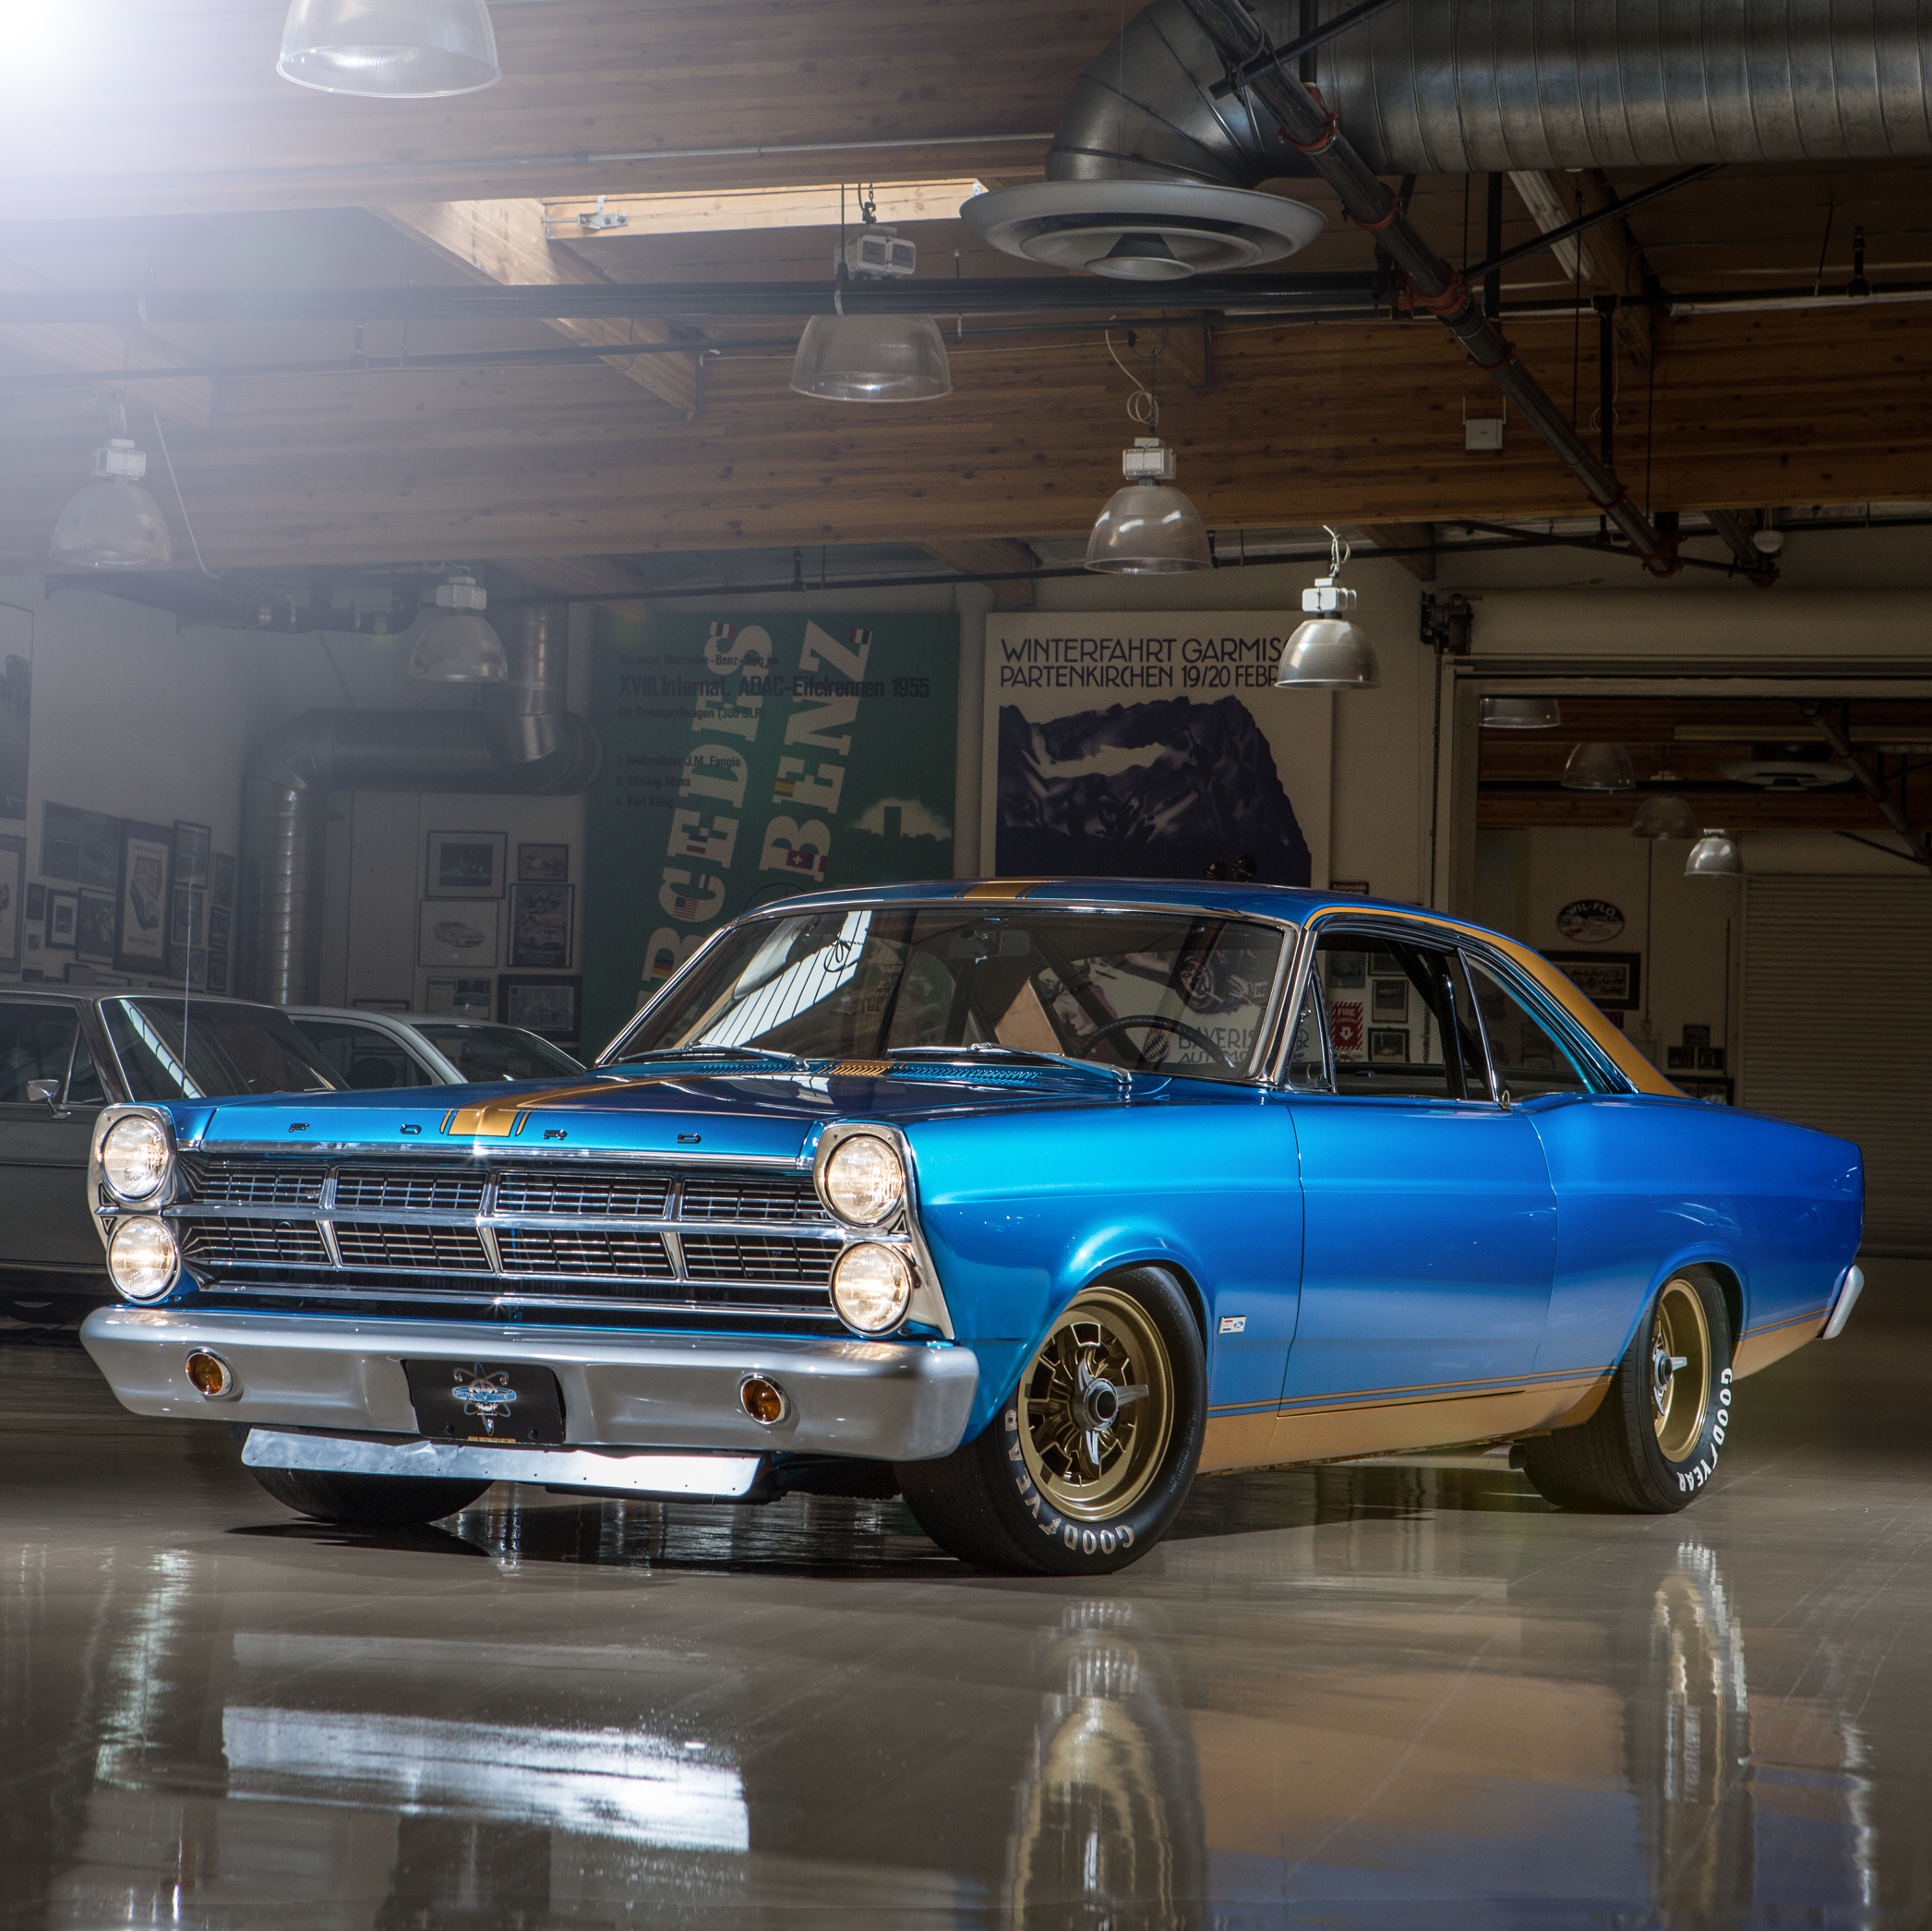 Ford Fairlane by Steve Strope